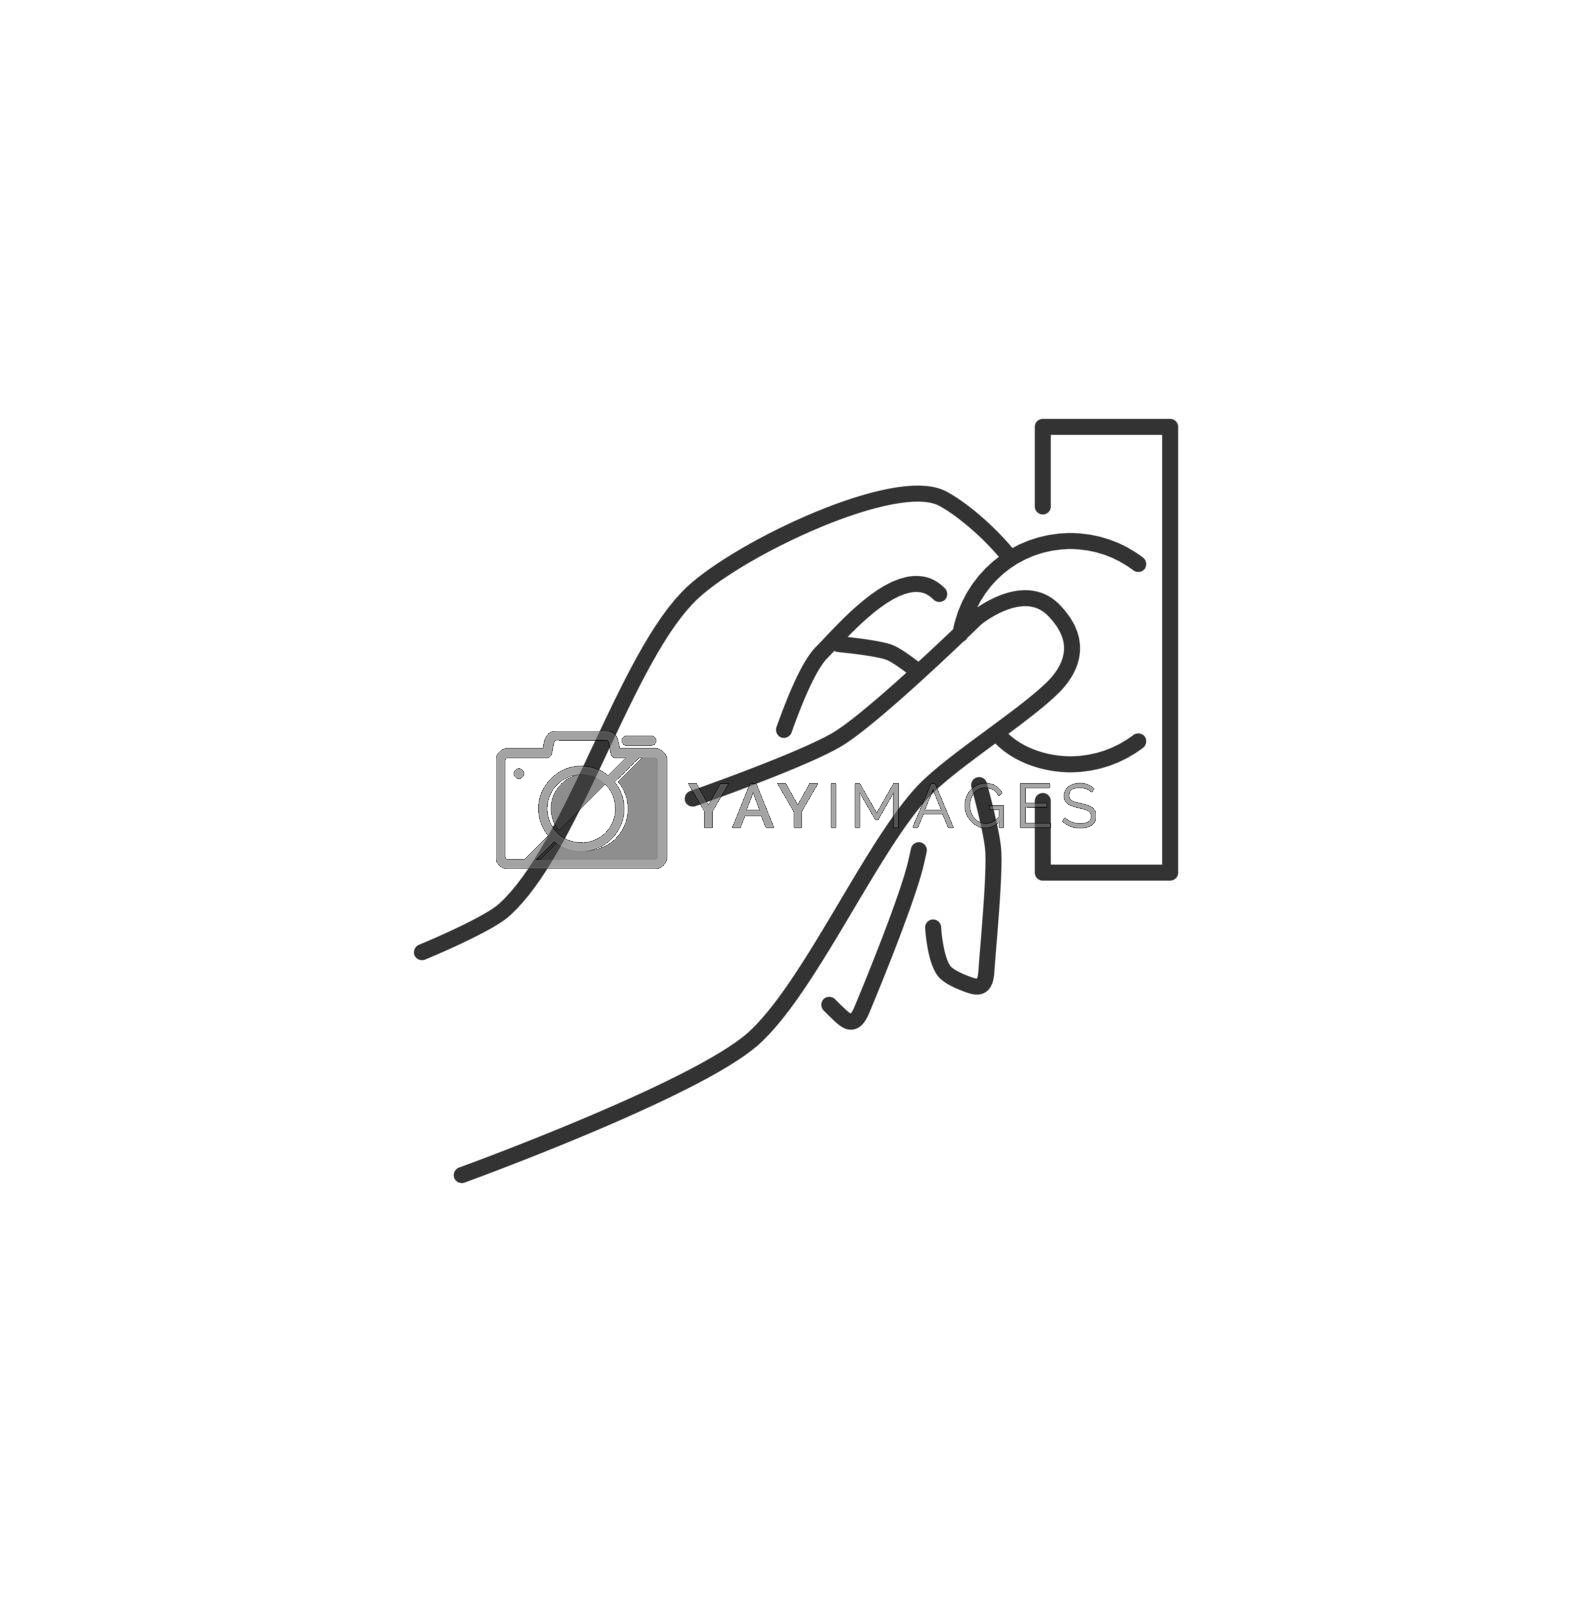 Hand Insert Coin Into the Coin Acceptor Related Vector Line Icon. Sign Isolated on the White Background. Editable Stroke EPS file. Vector illustration.